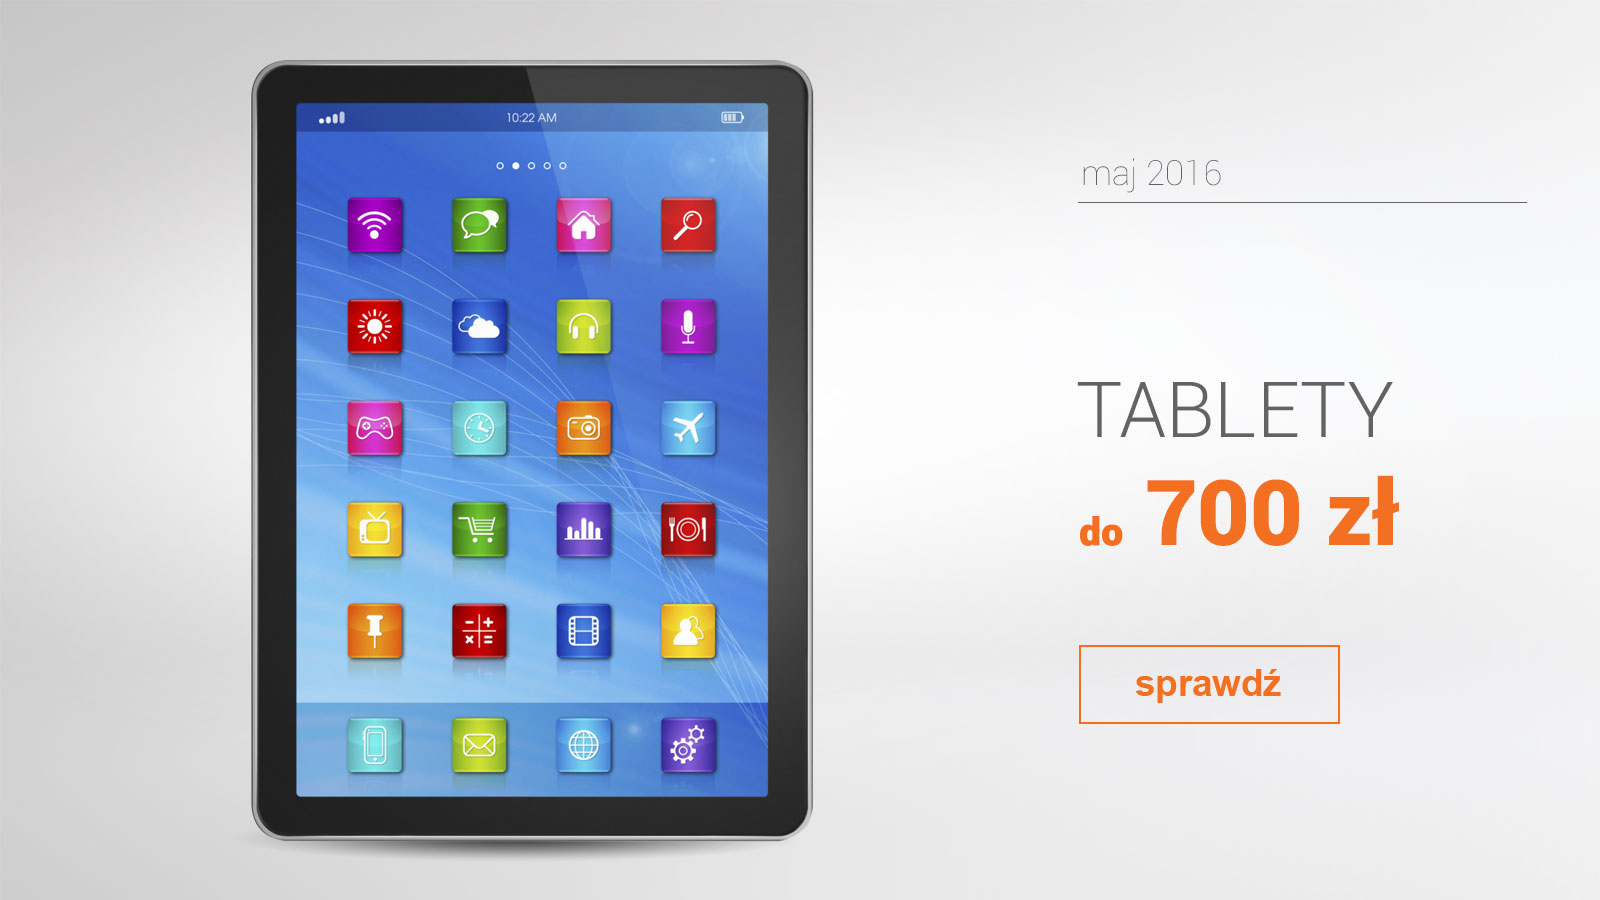 Tablety do 700 zł – maj 2016